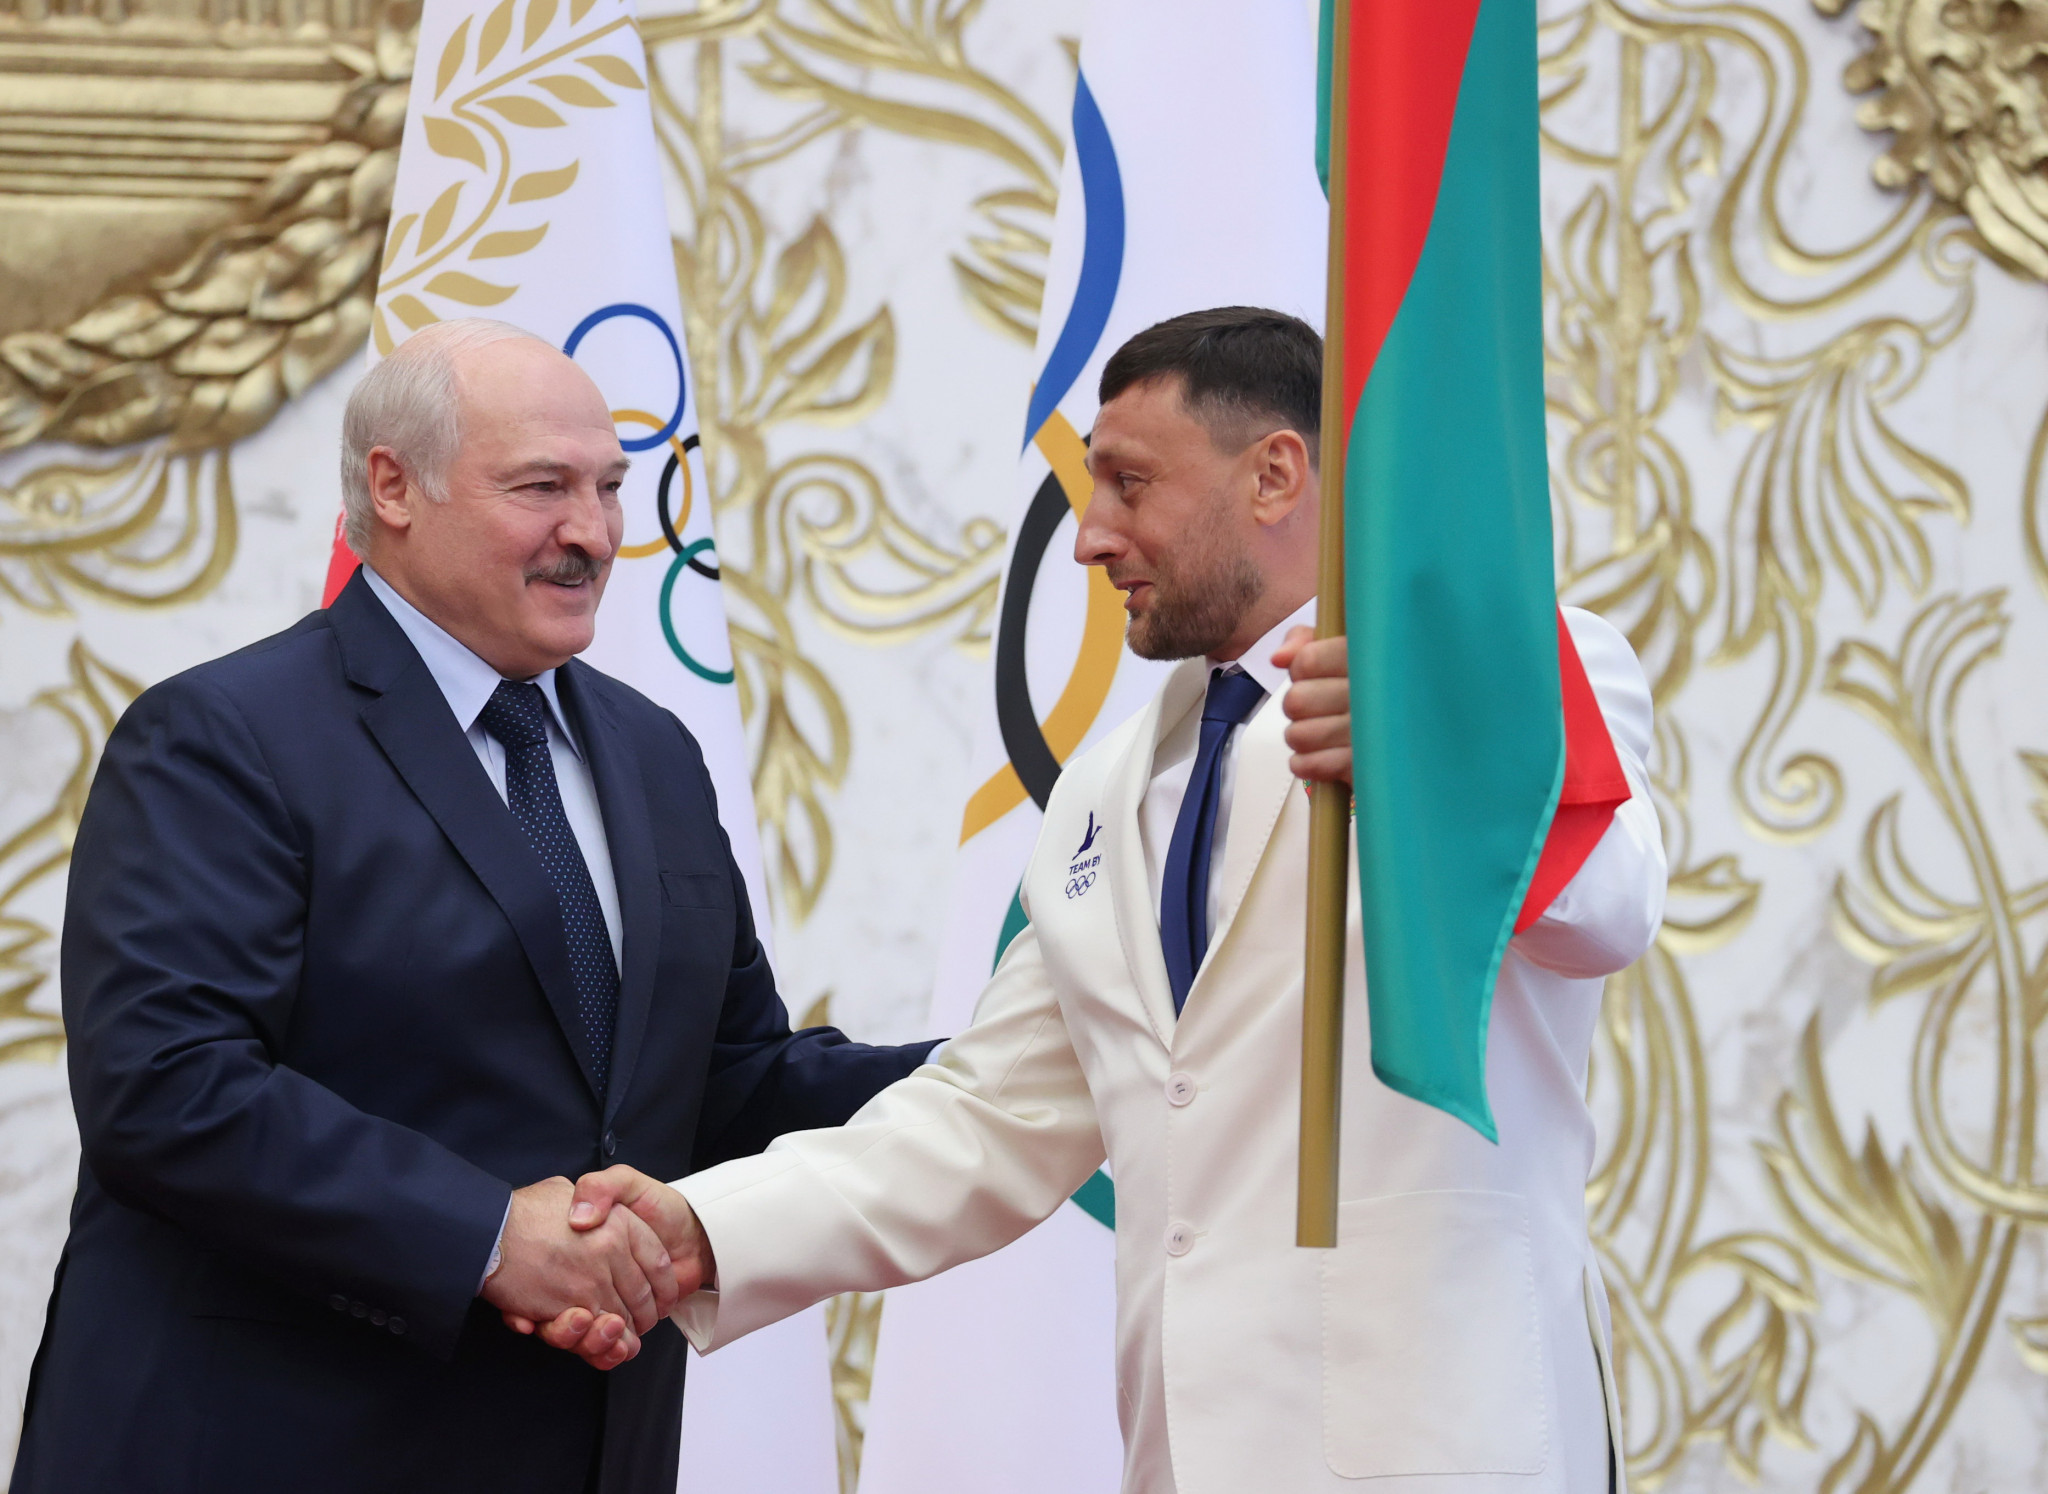 Drug cheat takes Olympic oath on behalf of Belarus athletes, who Lukashenko claims are victims of political pressure